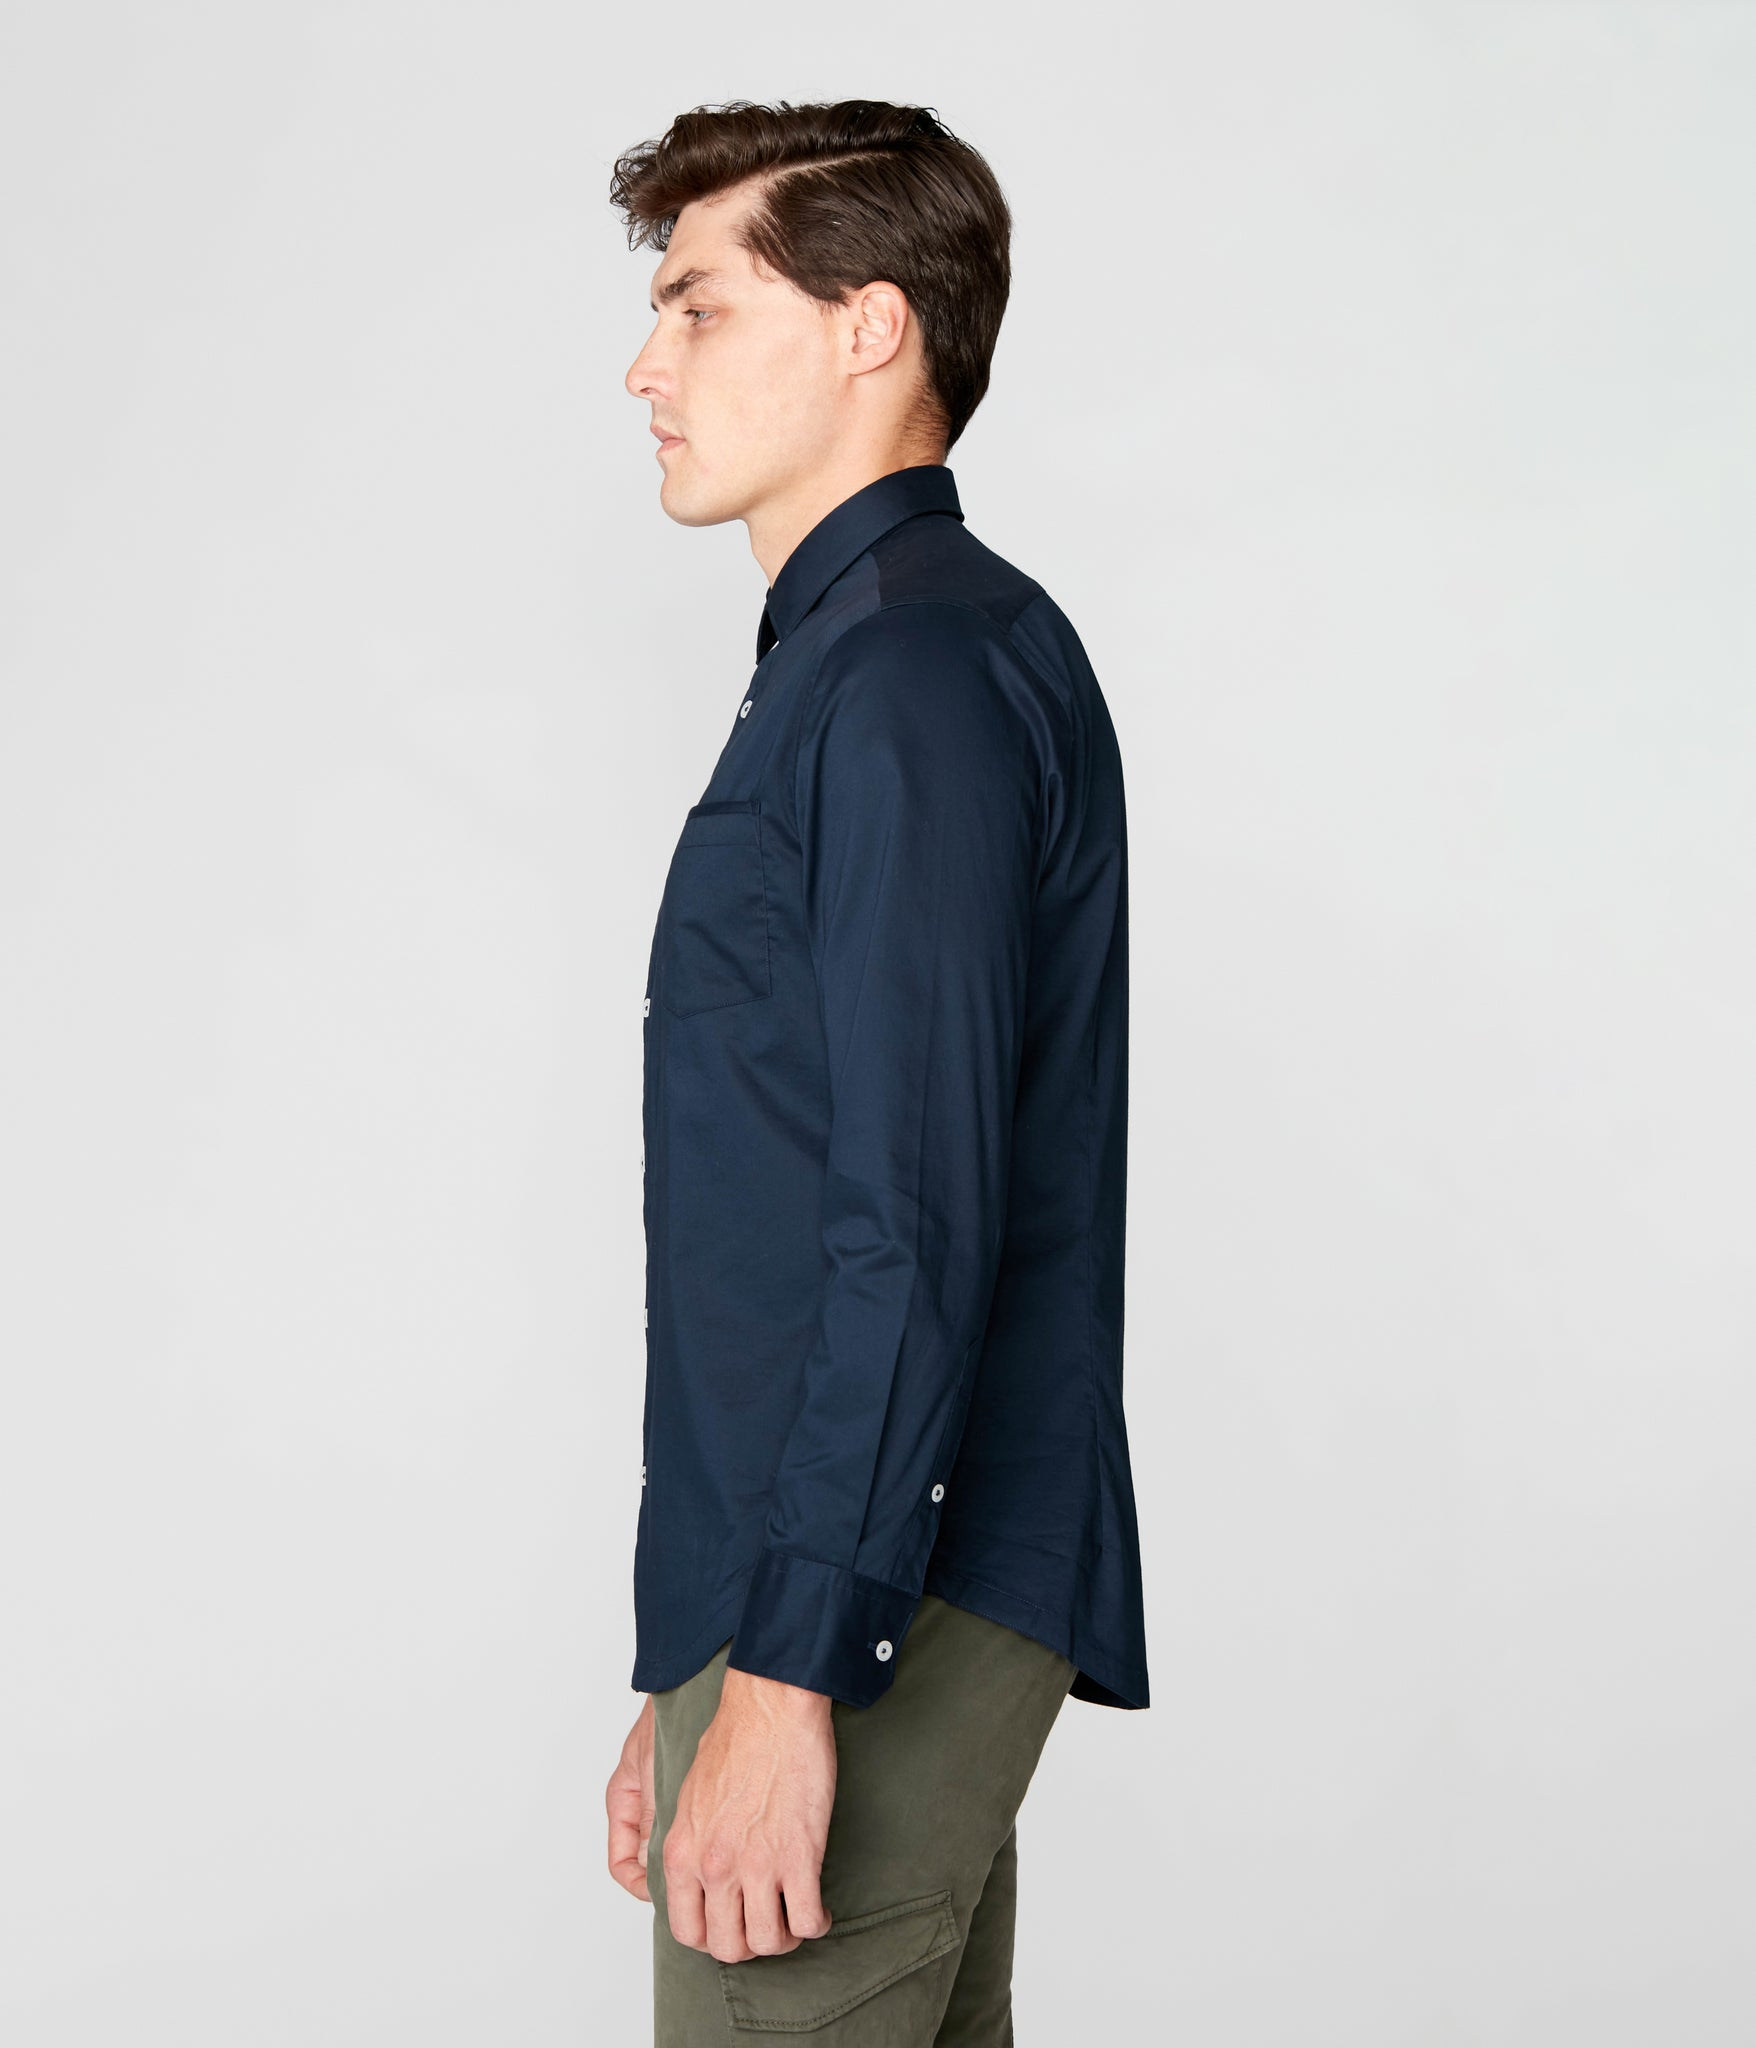 On-Point Solid Shirt - Navy